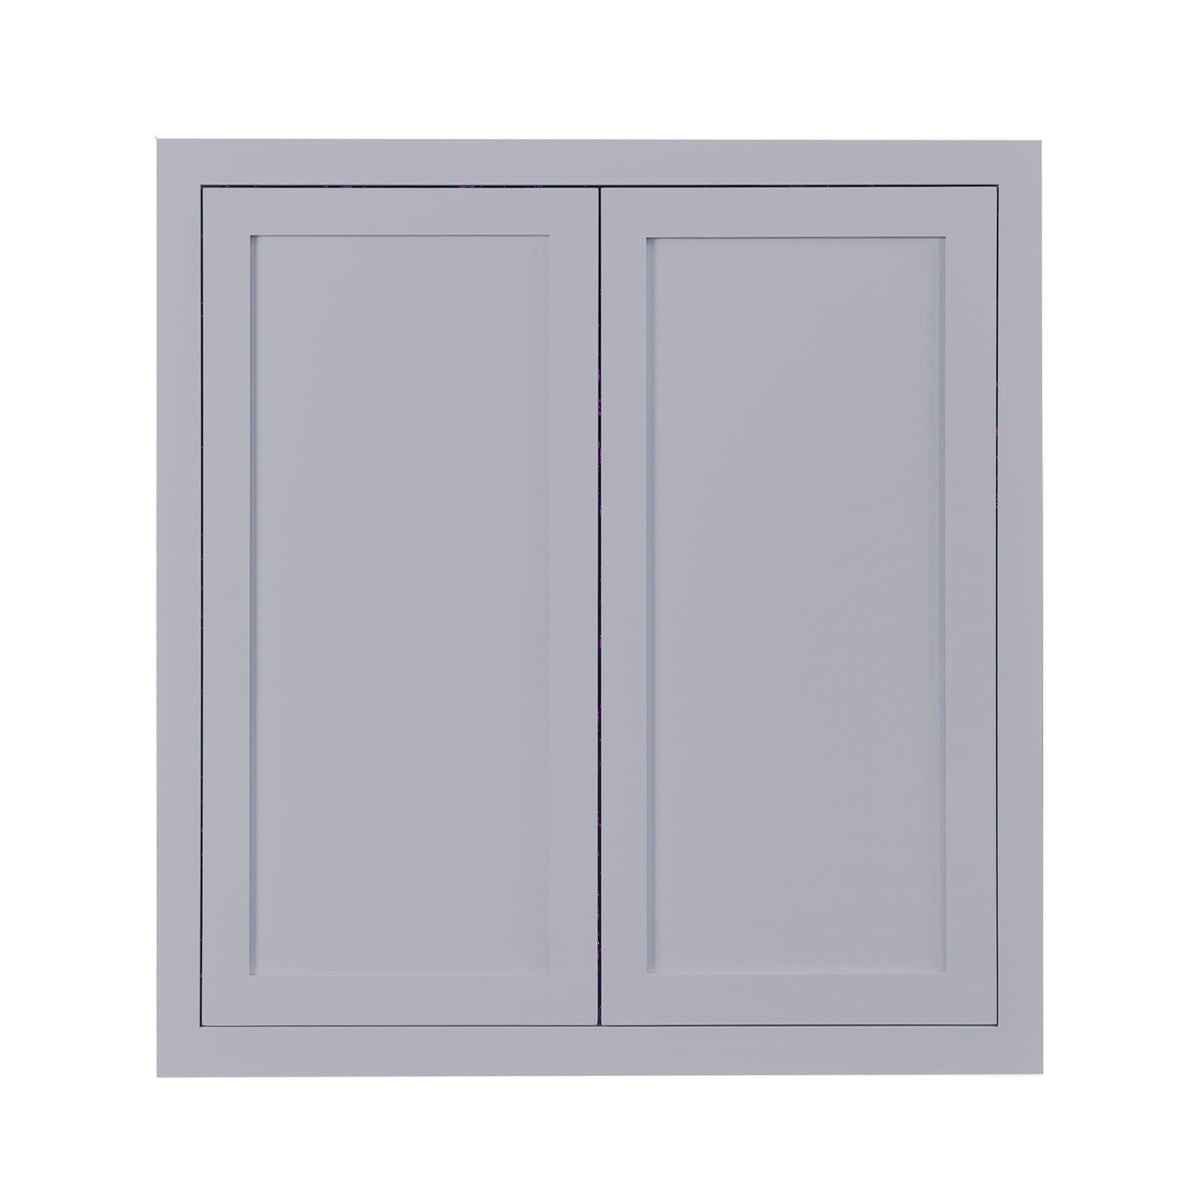 "39"" Tall Wall Cabinet 39"" Tall Light Gray Inset Shaker Wall Cabinet - Double Door -  24"", 27"", 30"", 33"" & 36"" D2W363914 Inset Kitchen Cabinets"